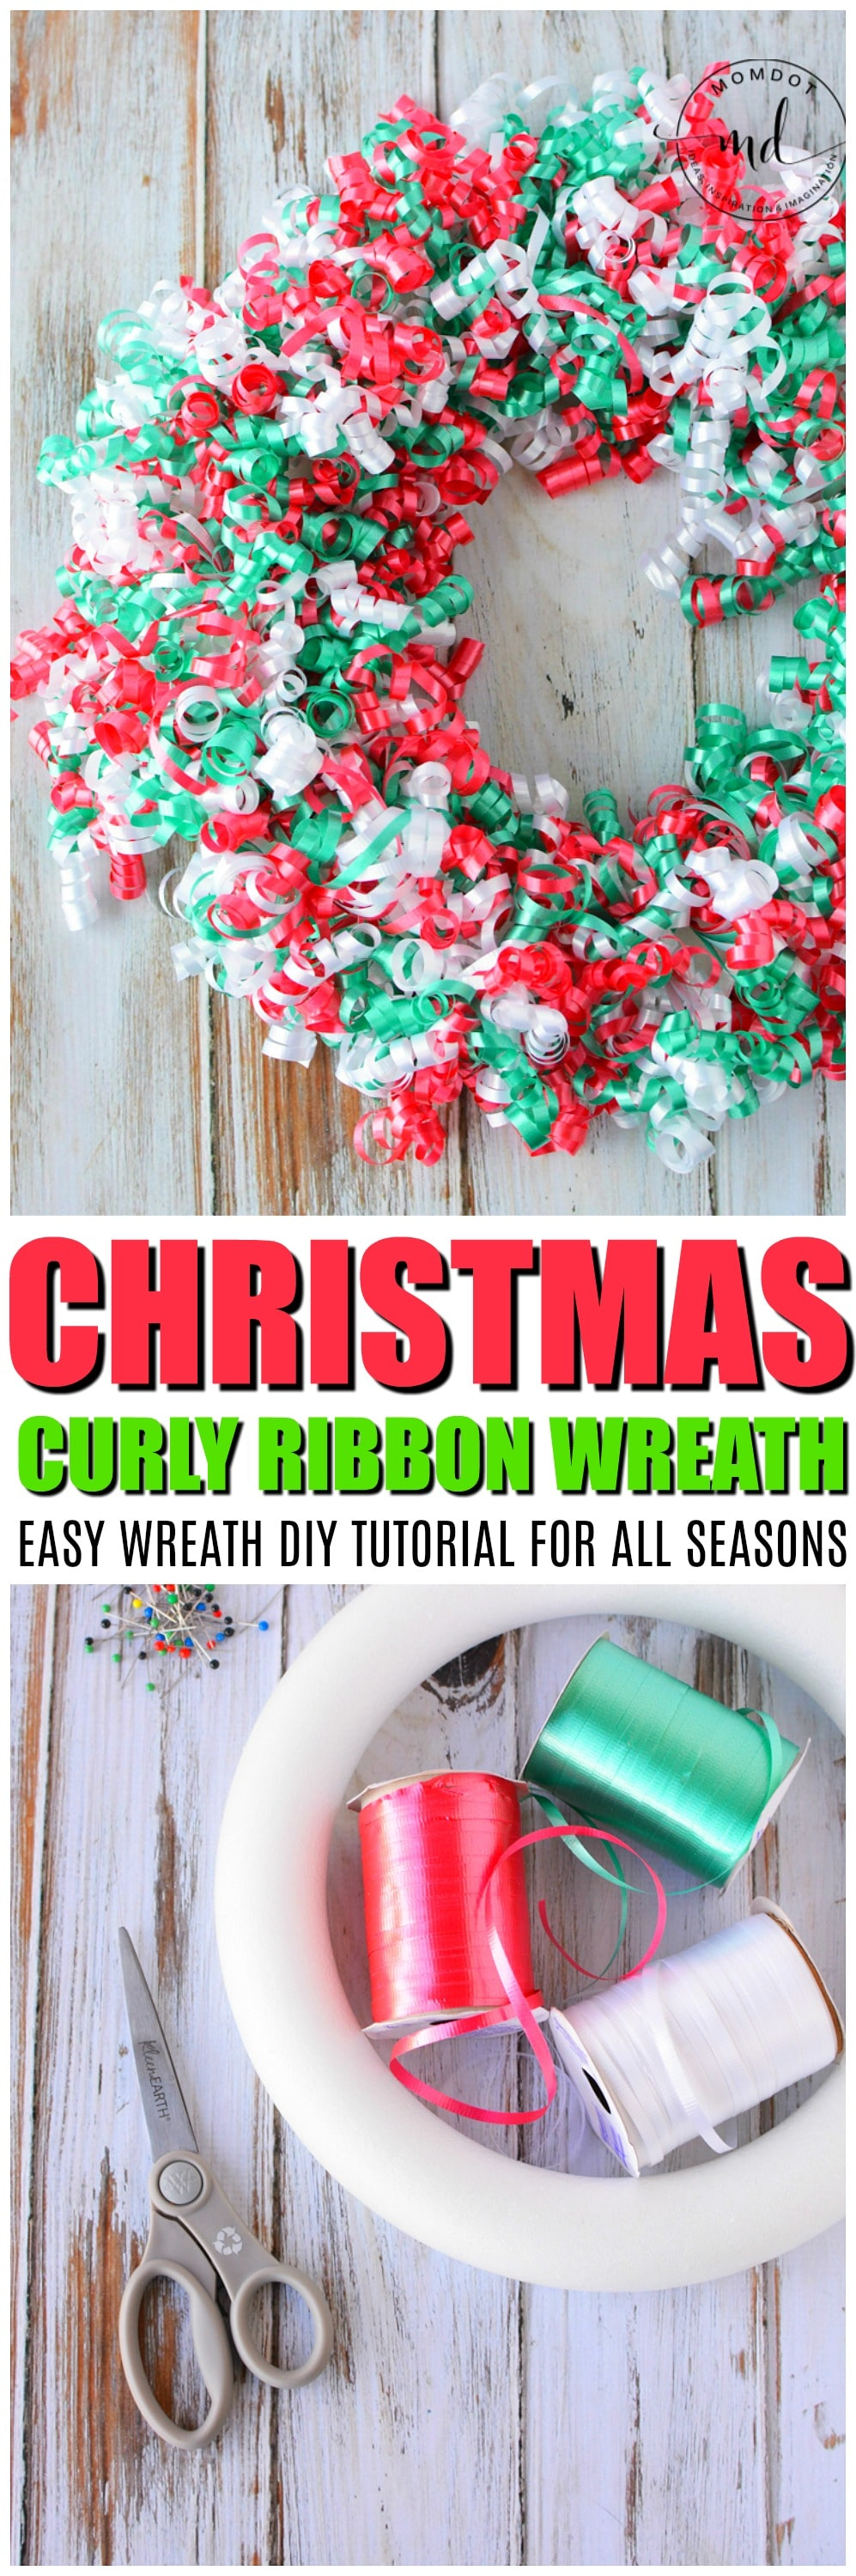 Christmas Wreaths DIY for Front Door, a Curly Ribbon Wreath Idea and Tutorial